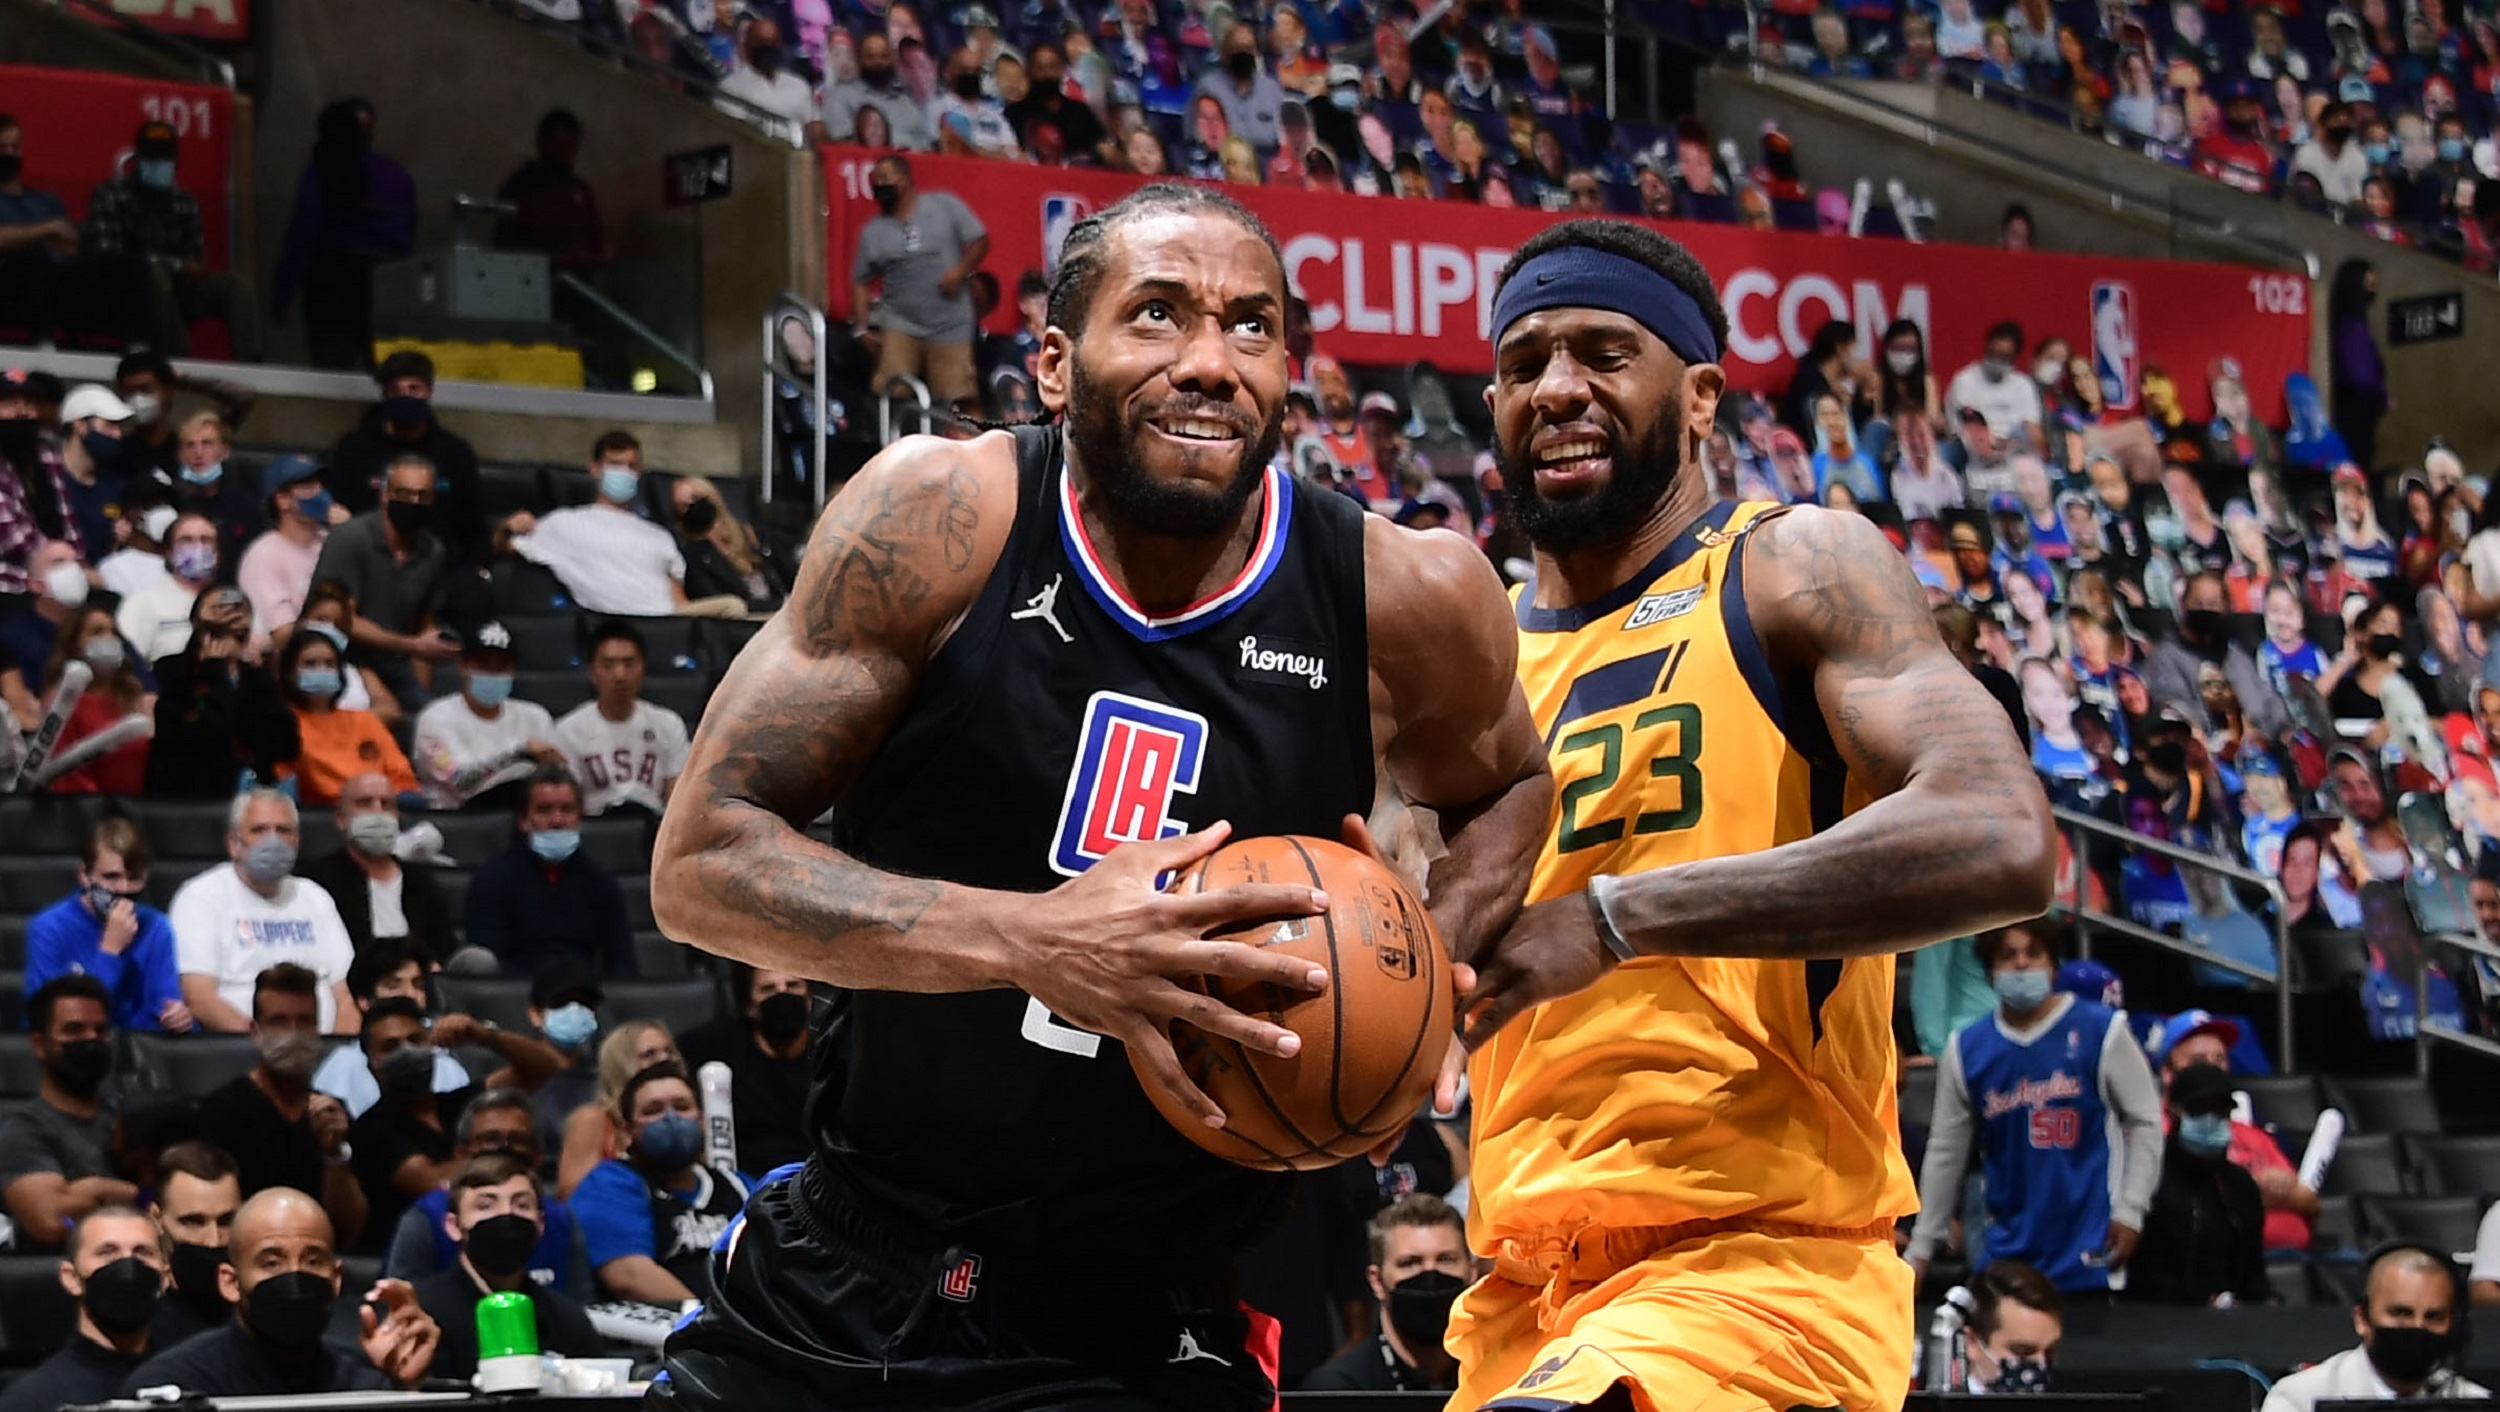 LA Clippers cruise again, knot series at 2-2